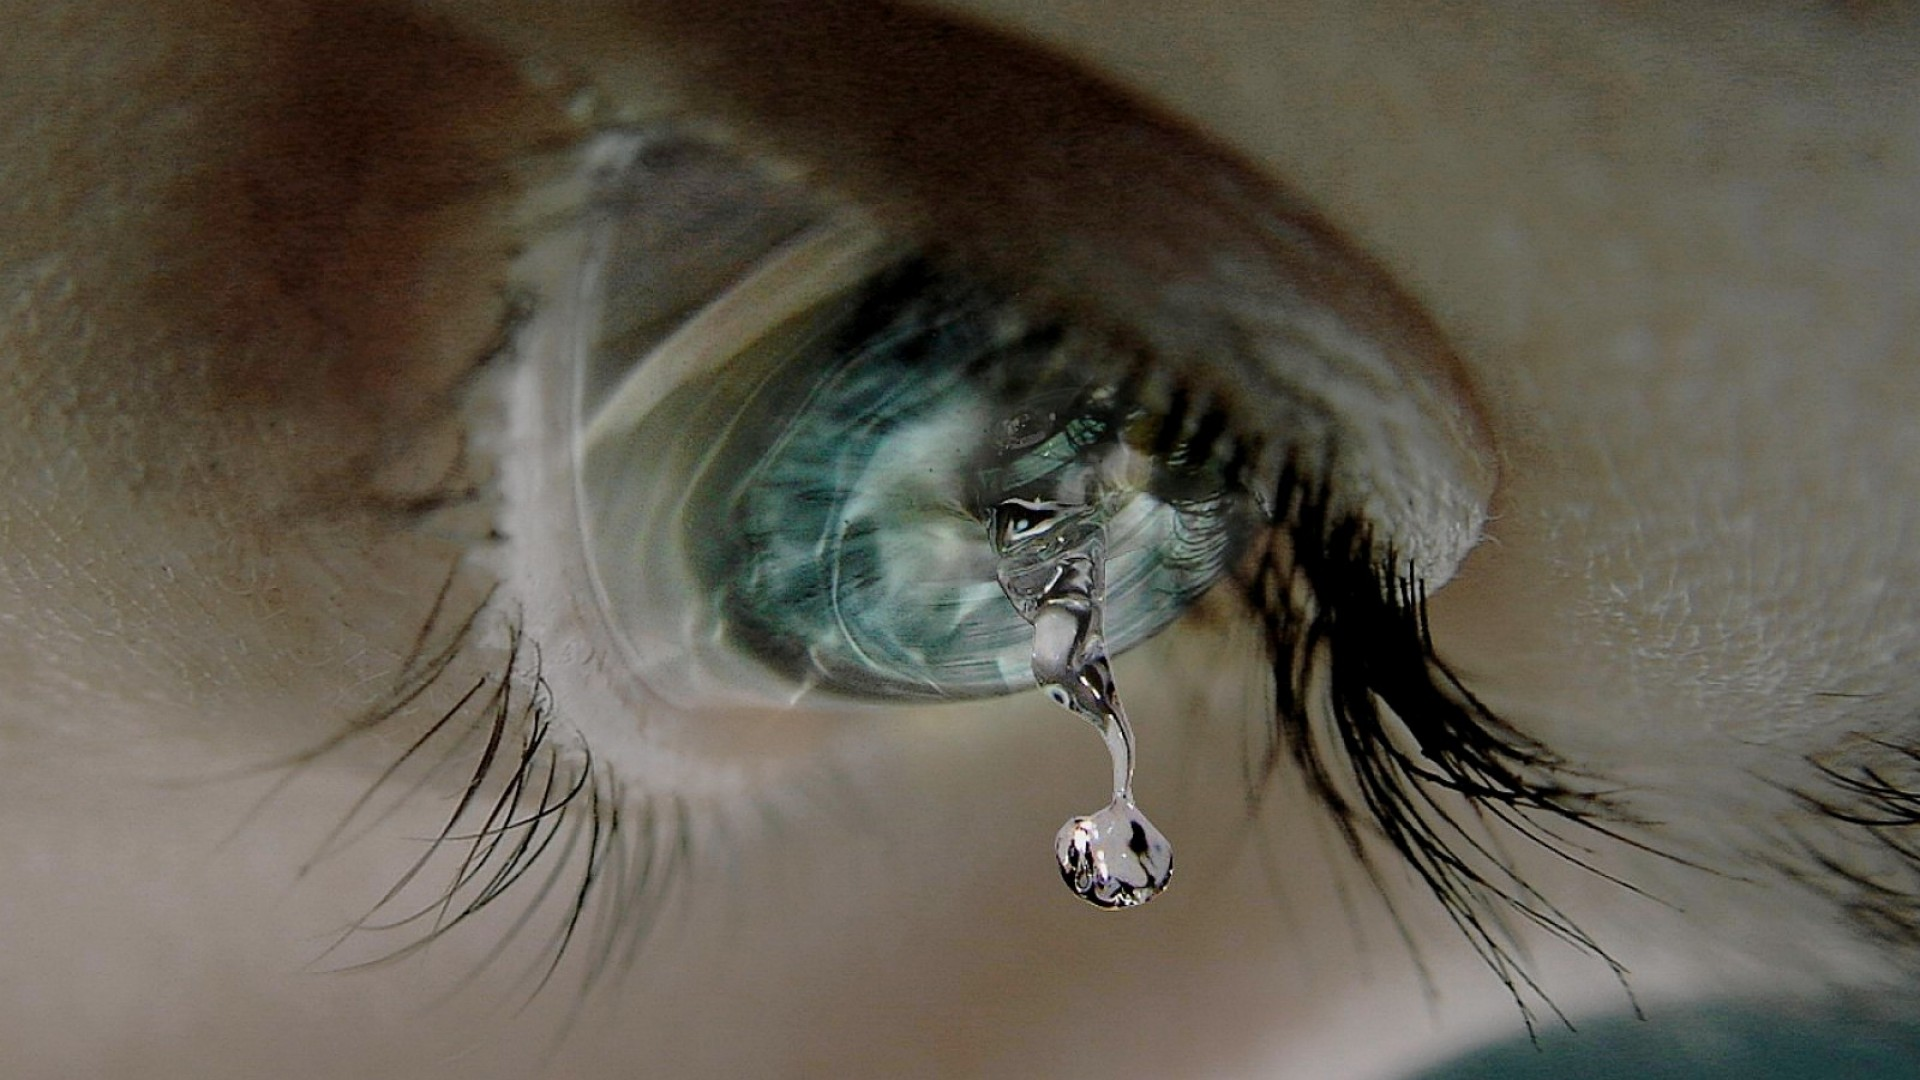 Drawn tears abstract Iphone abstract 39 3d &